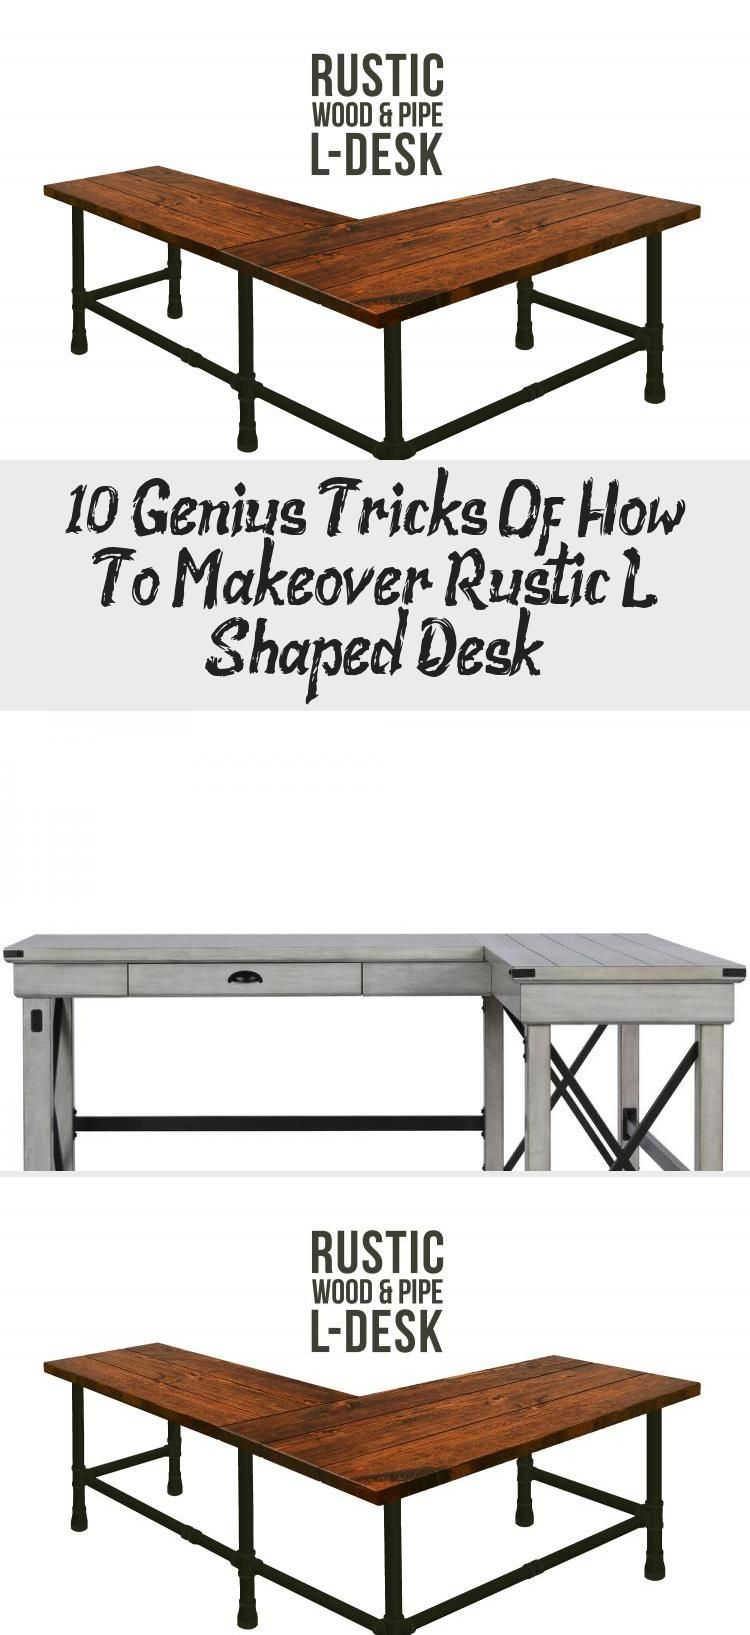 10 Genius Tricks Of How To Makeover Rustic L Shaped Desk